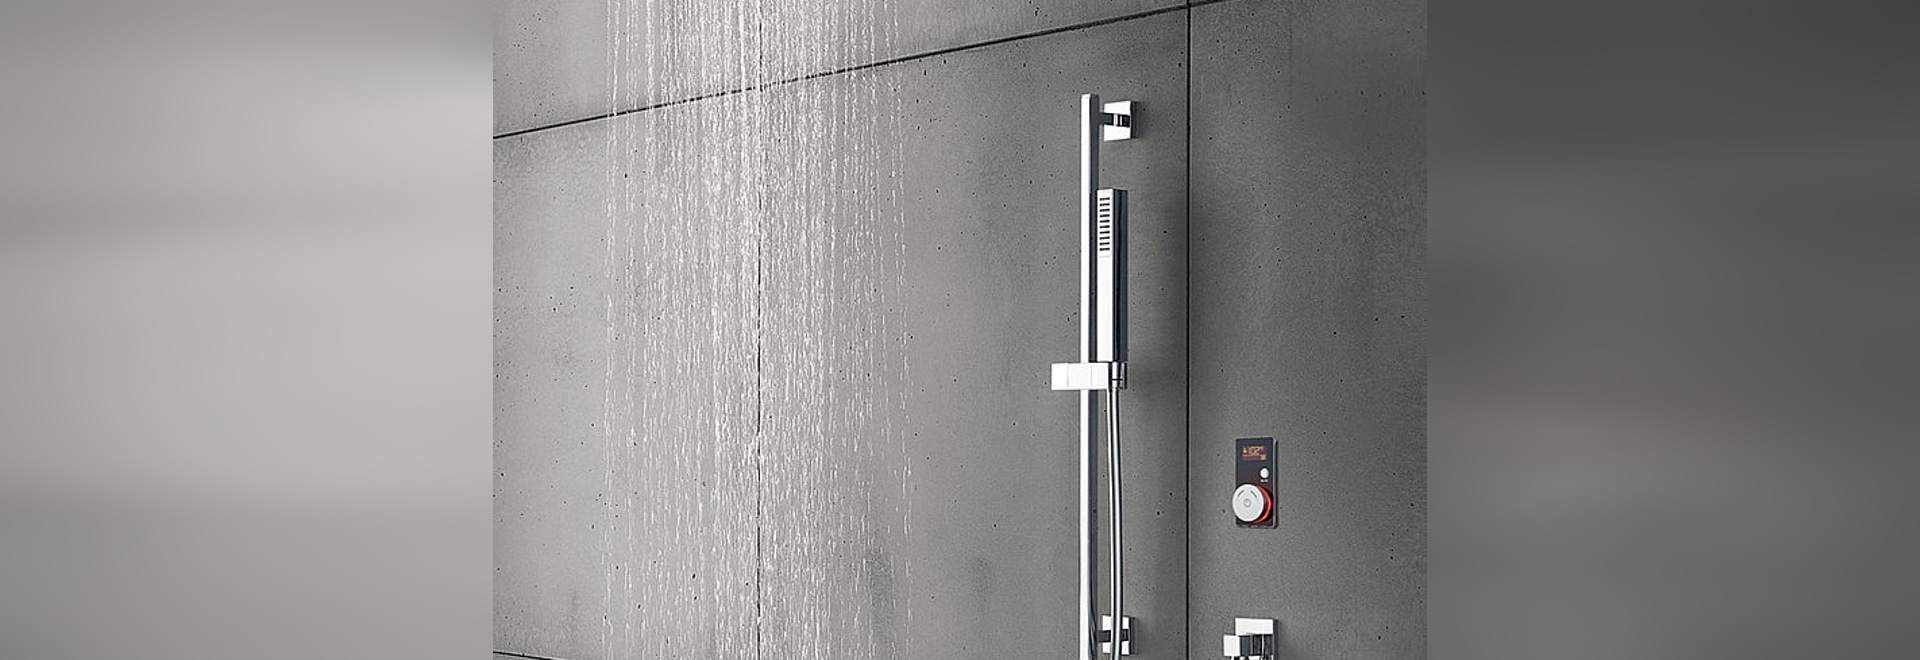 NEW Vision Wheel electronic shower control by BLU